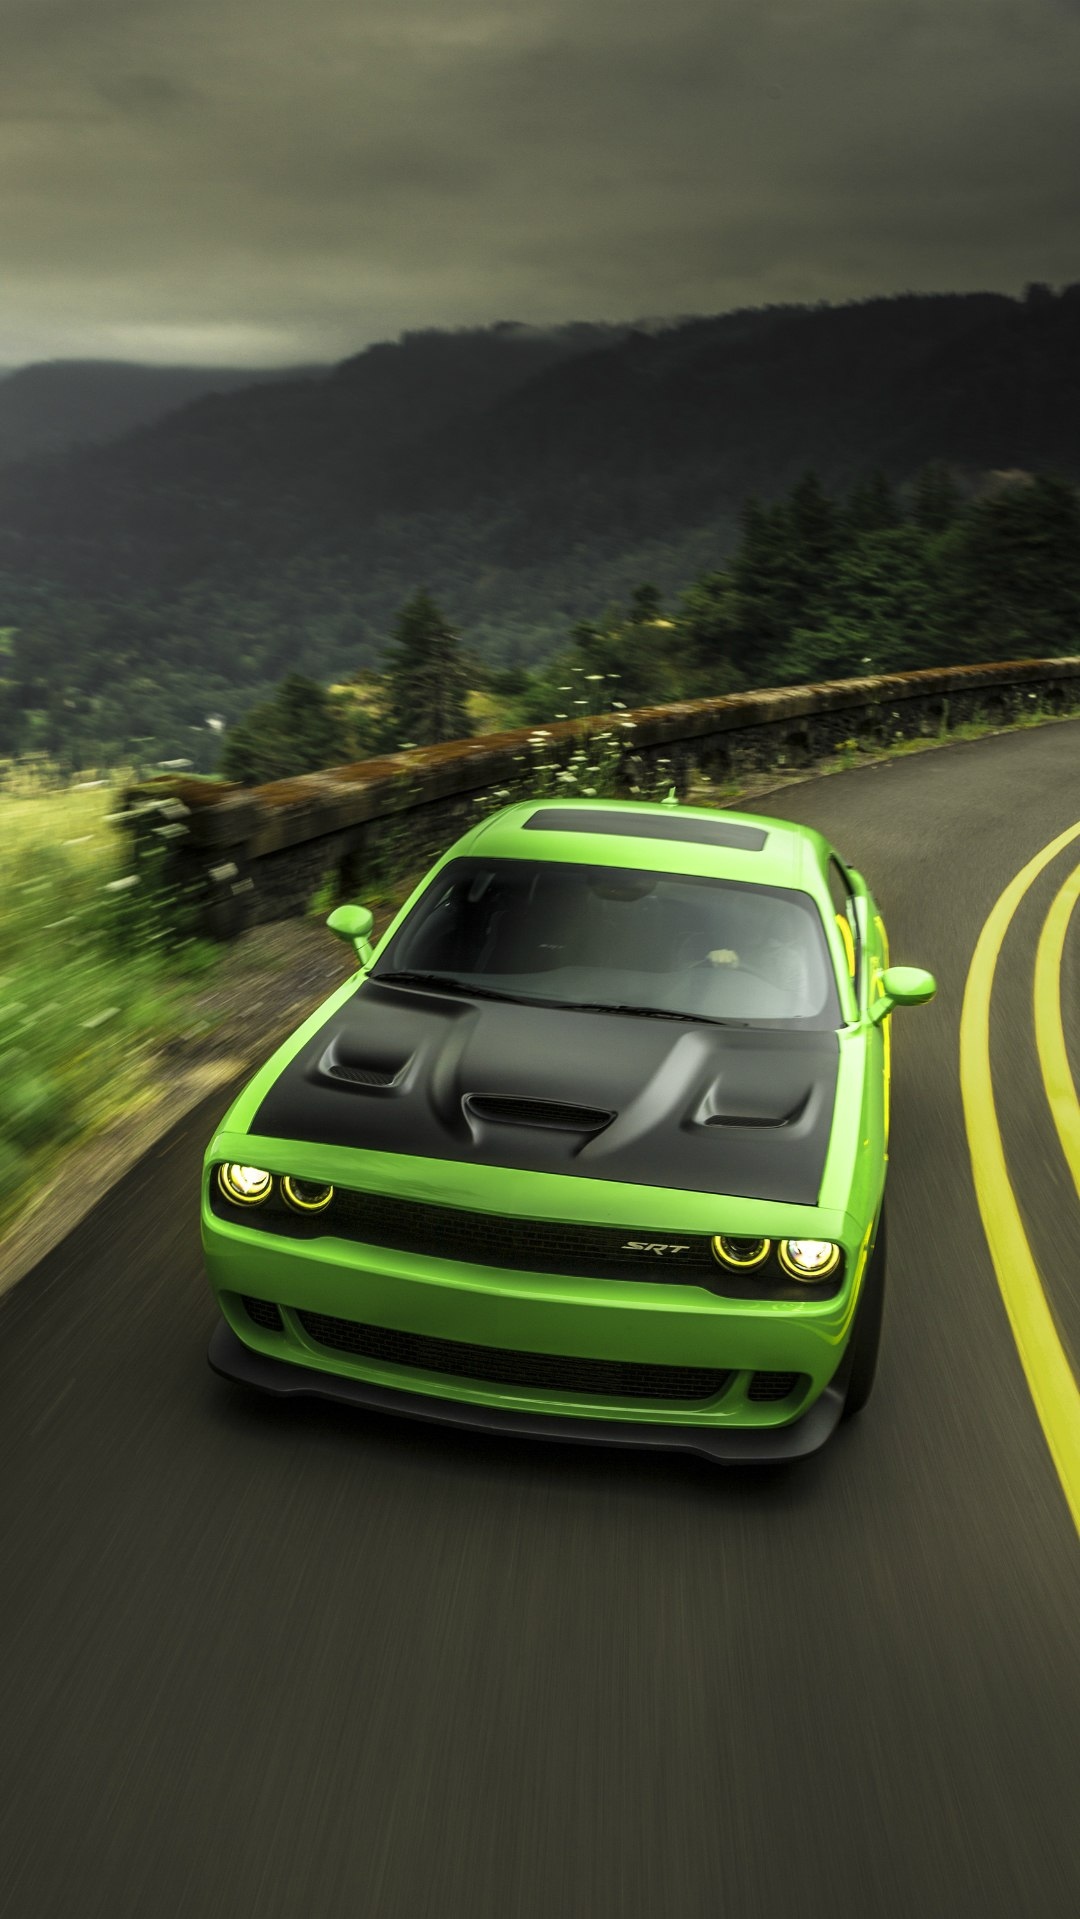 Dodge Challenger SRT Green iPhone Wallpaper iphoneswallpapers com